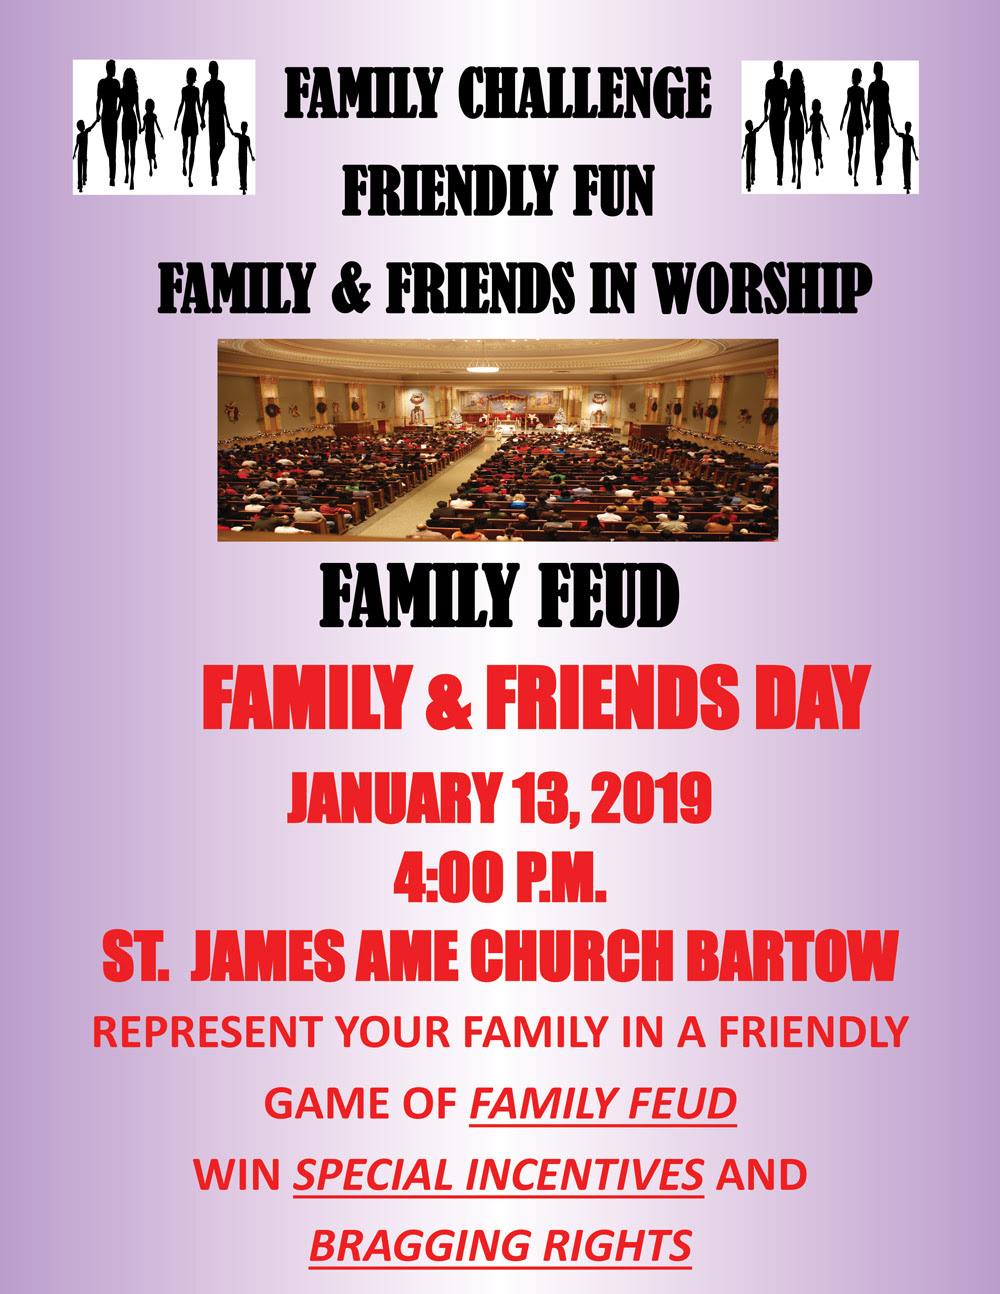 Family Friends Day 2019